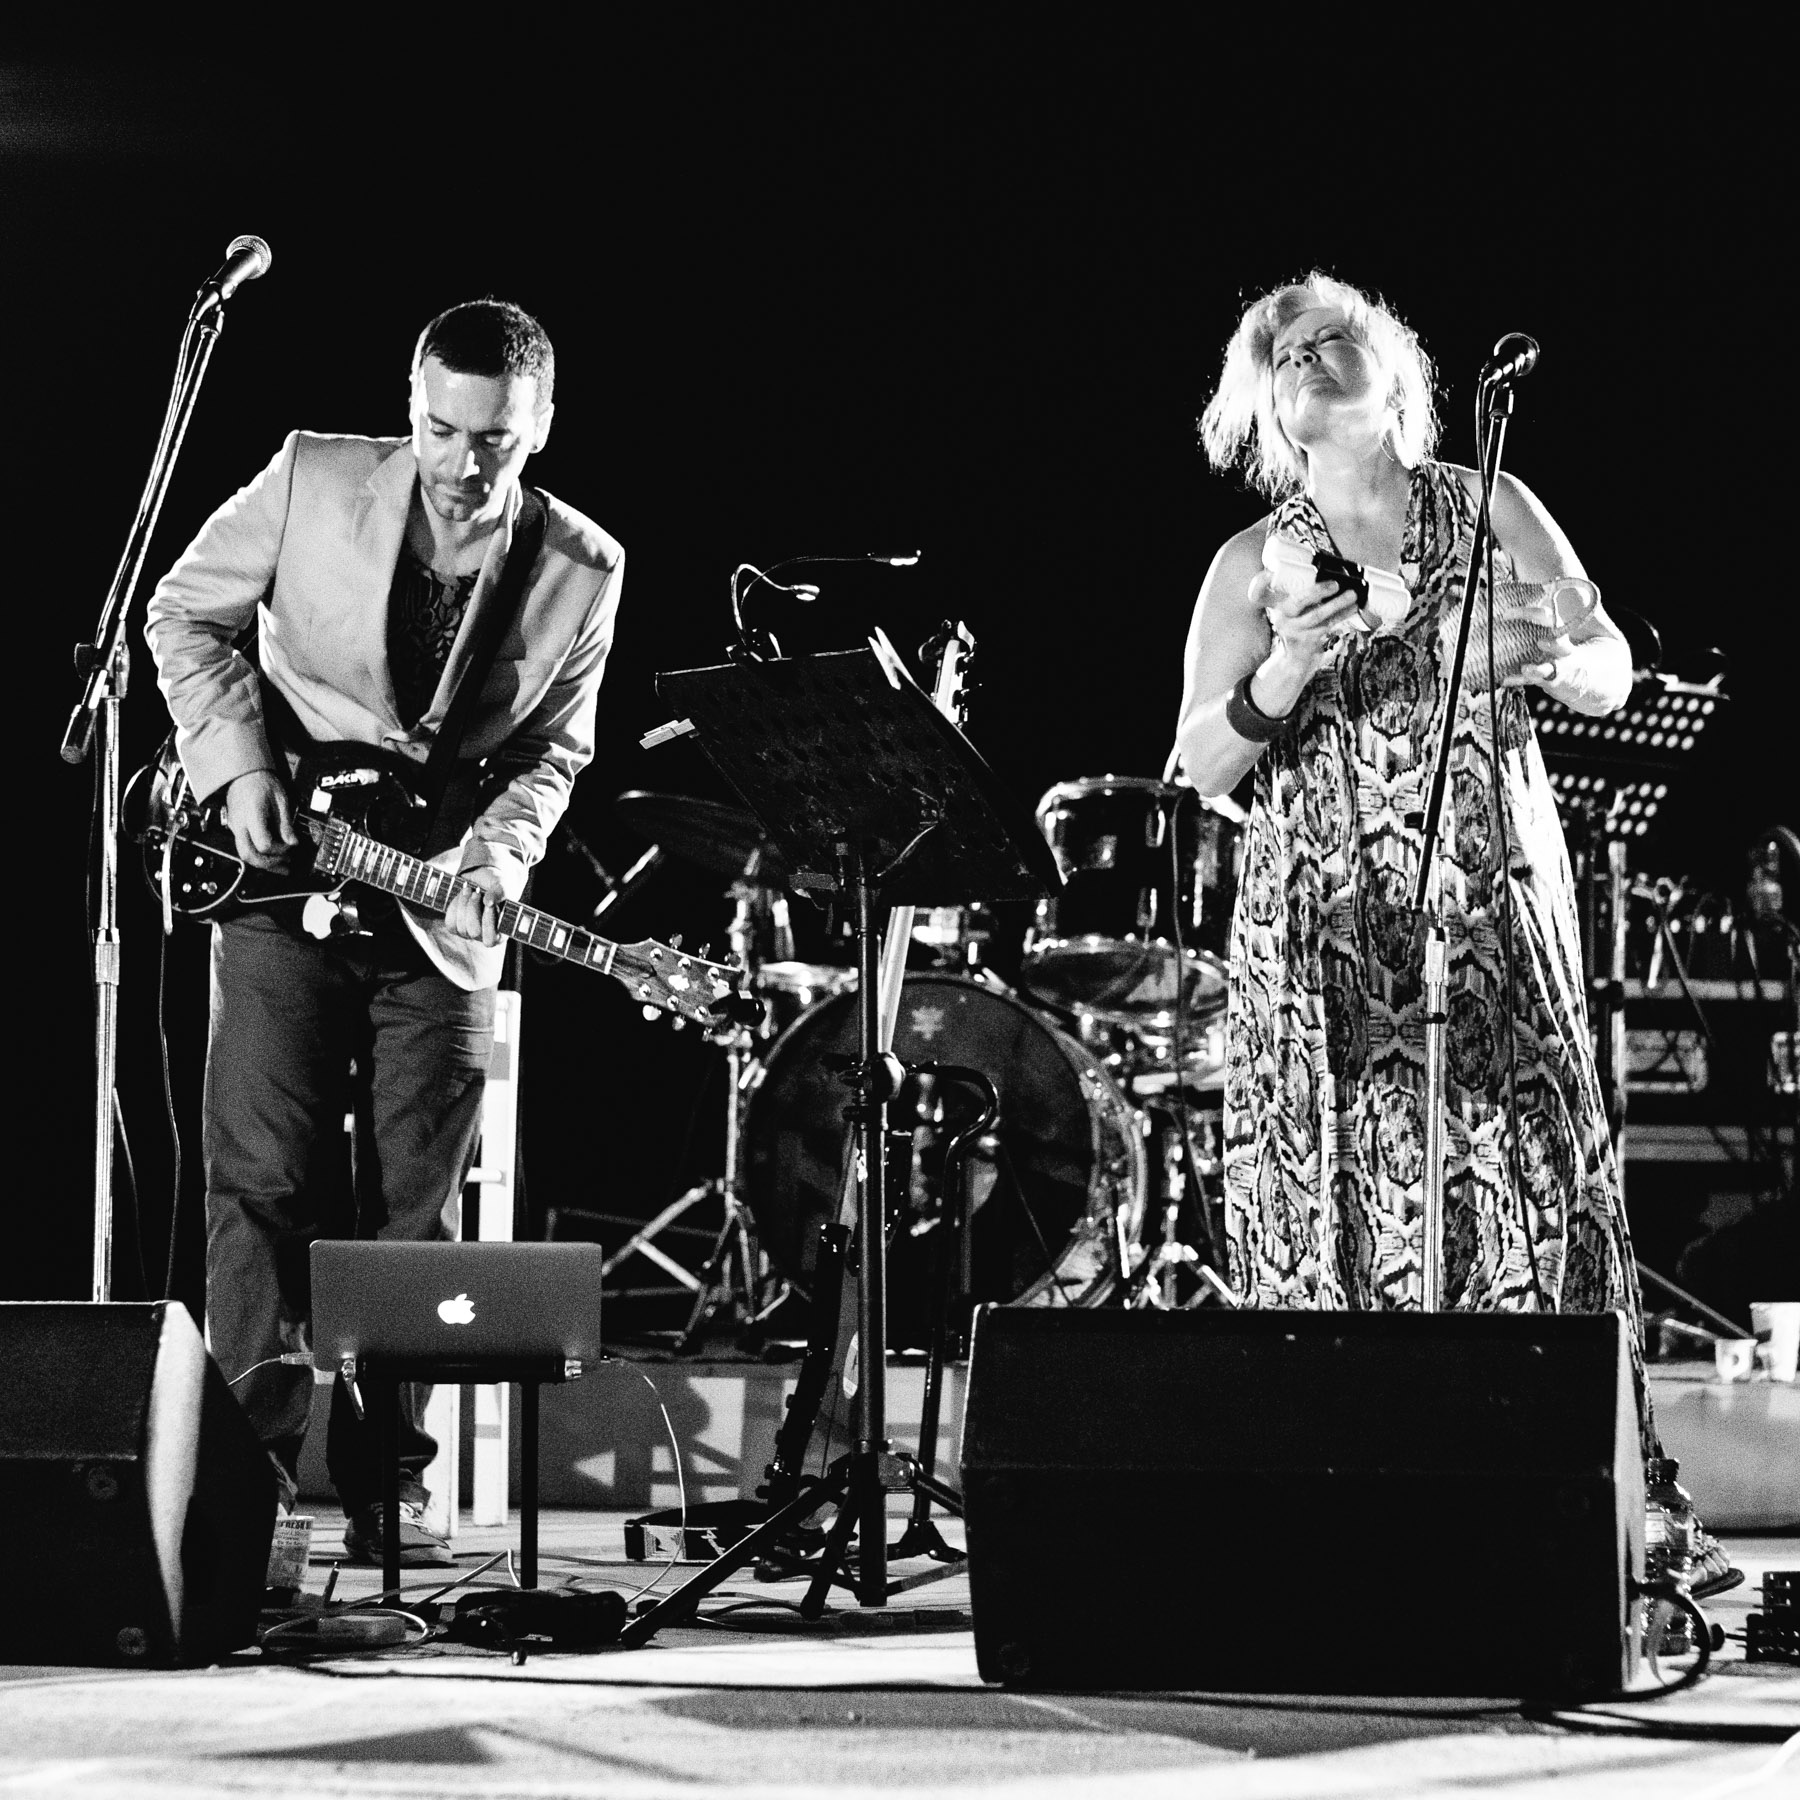 Elli Paspala, Vassilikos, David Lynch and Takis Farazis – Play / Paros Park, Paros, Greece